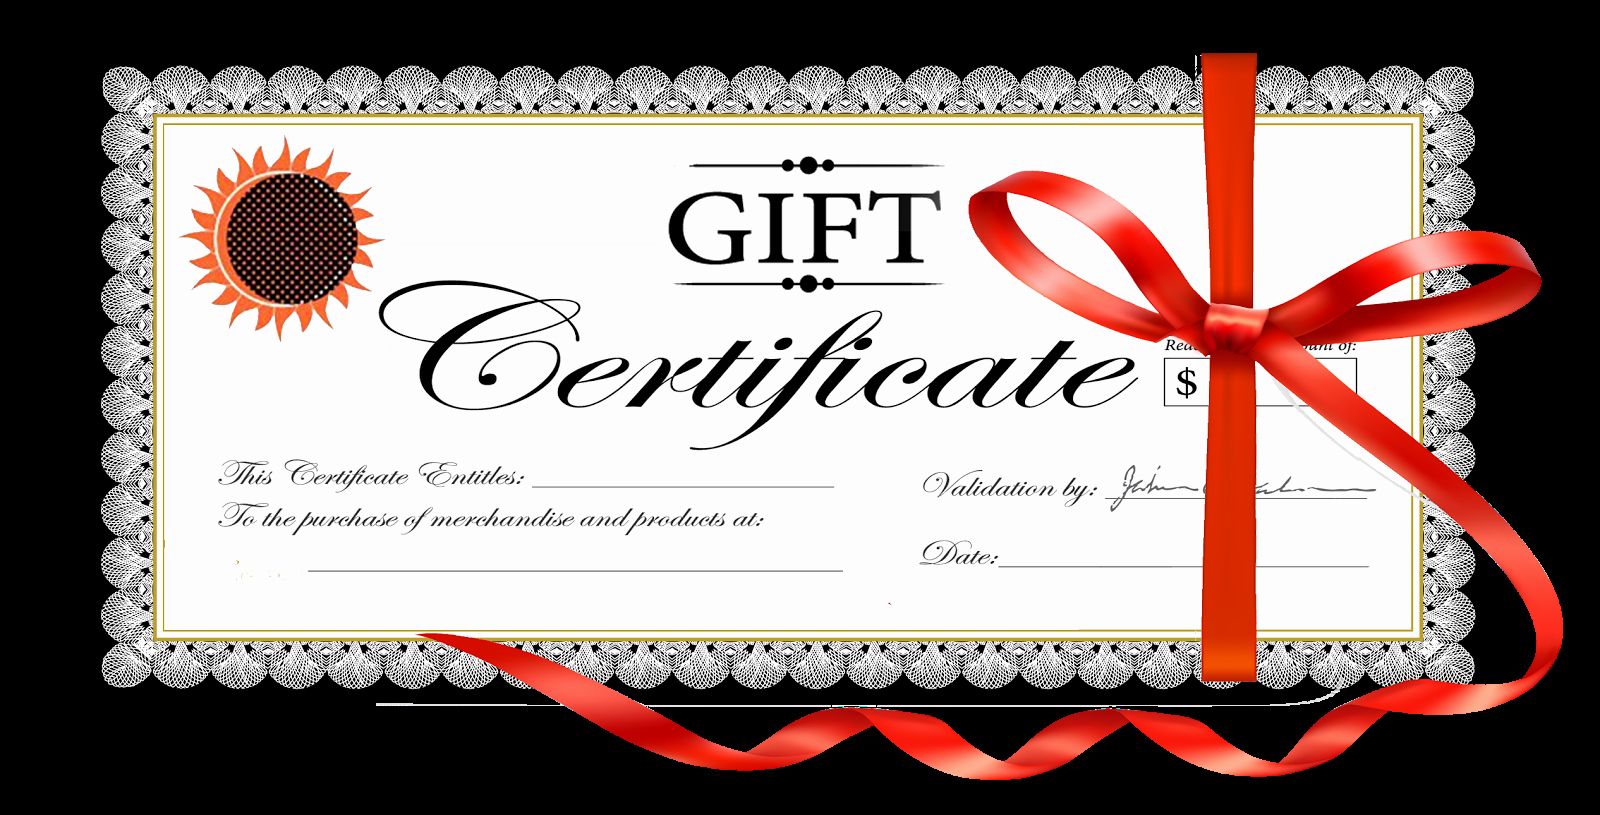 Gift Certificate Wording Best Of 18 Gift Certificate Templates Excel Pdf formats